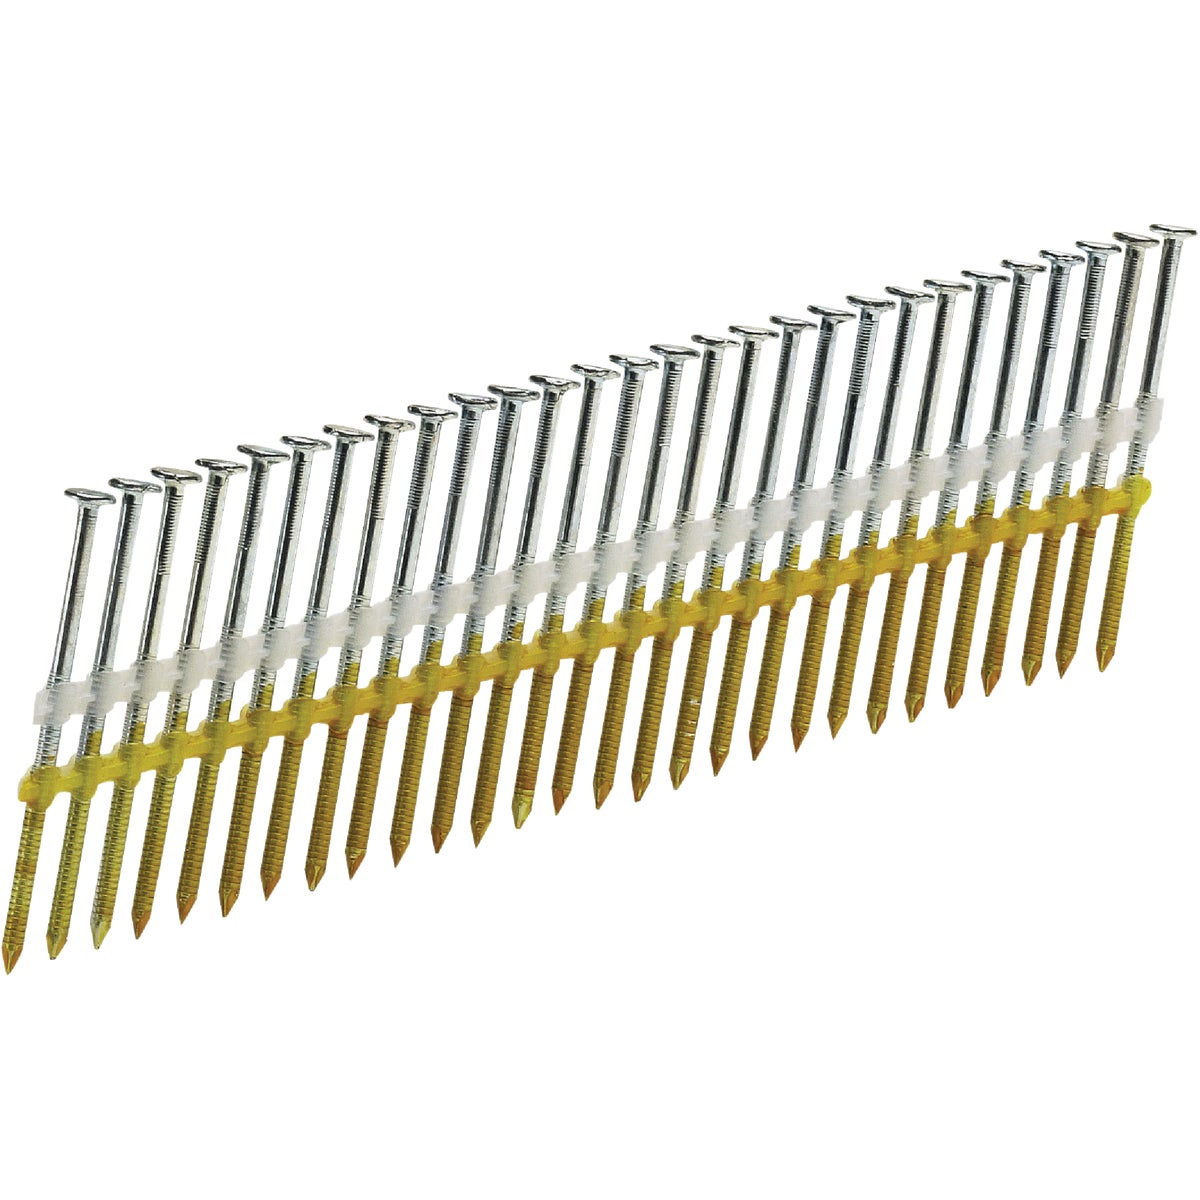 "2-3/8"" FRAMING NAIL - GL24AABSN by Senco Brands"